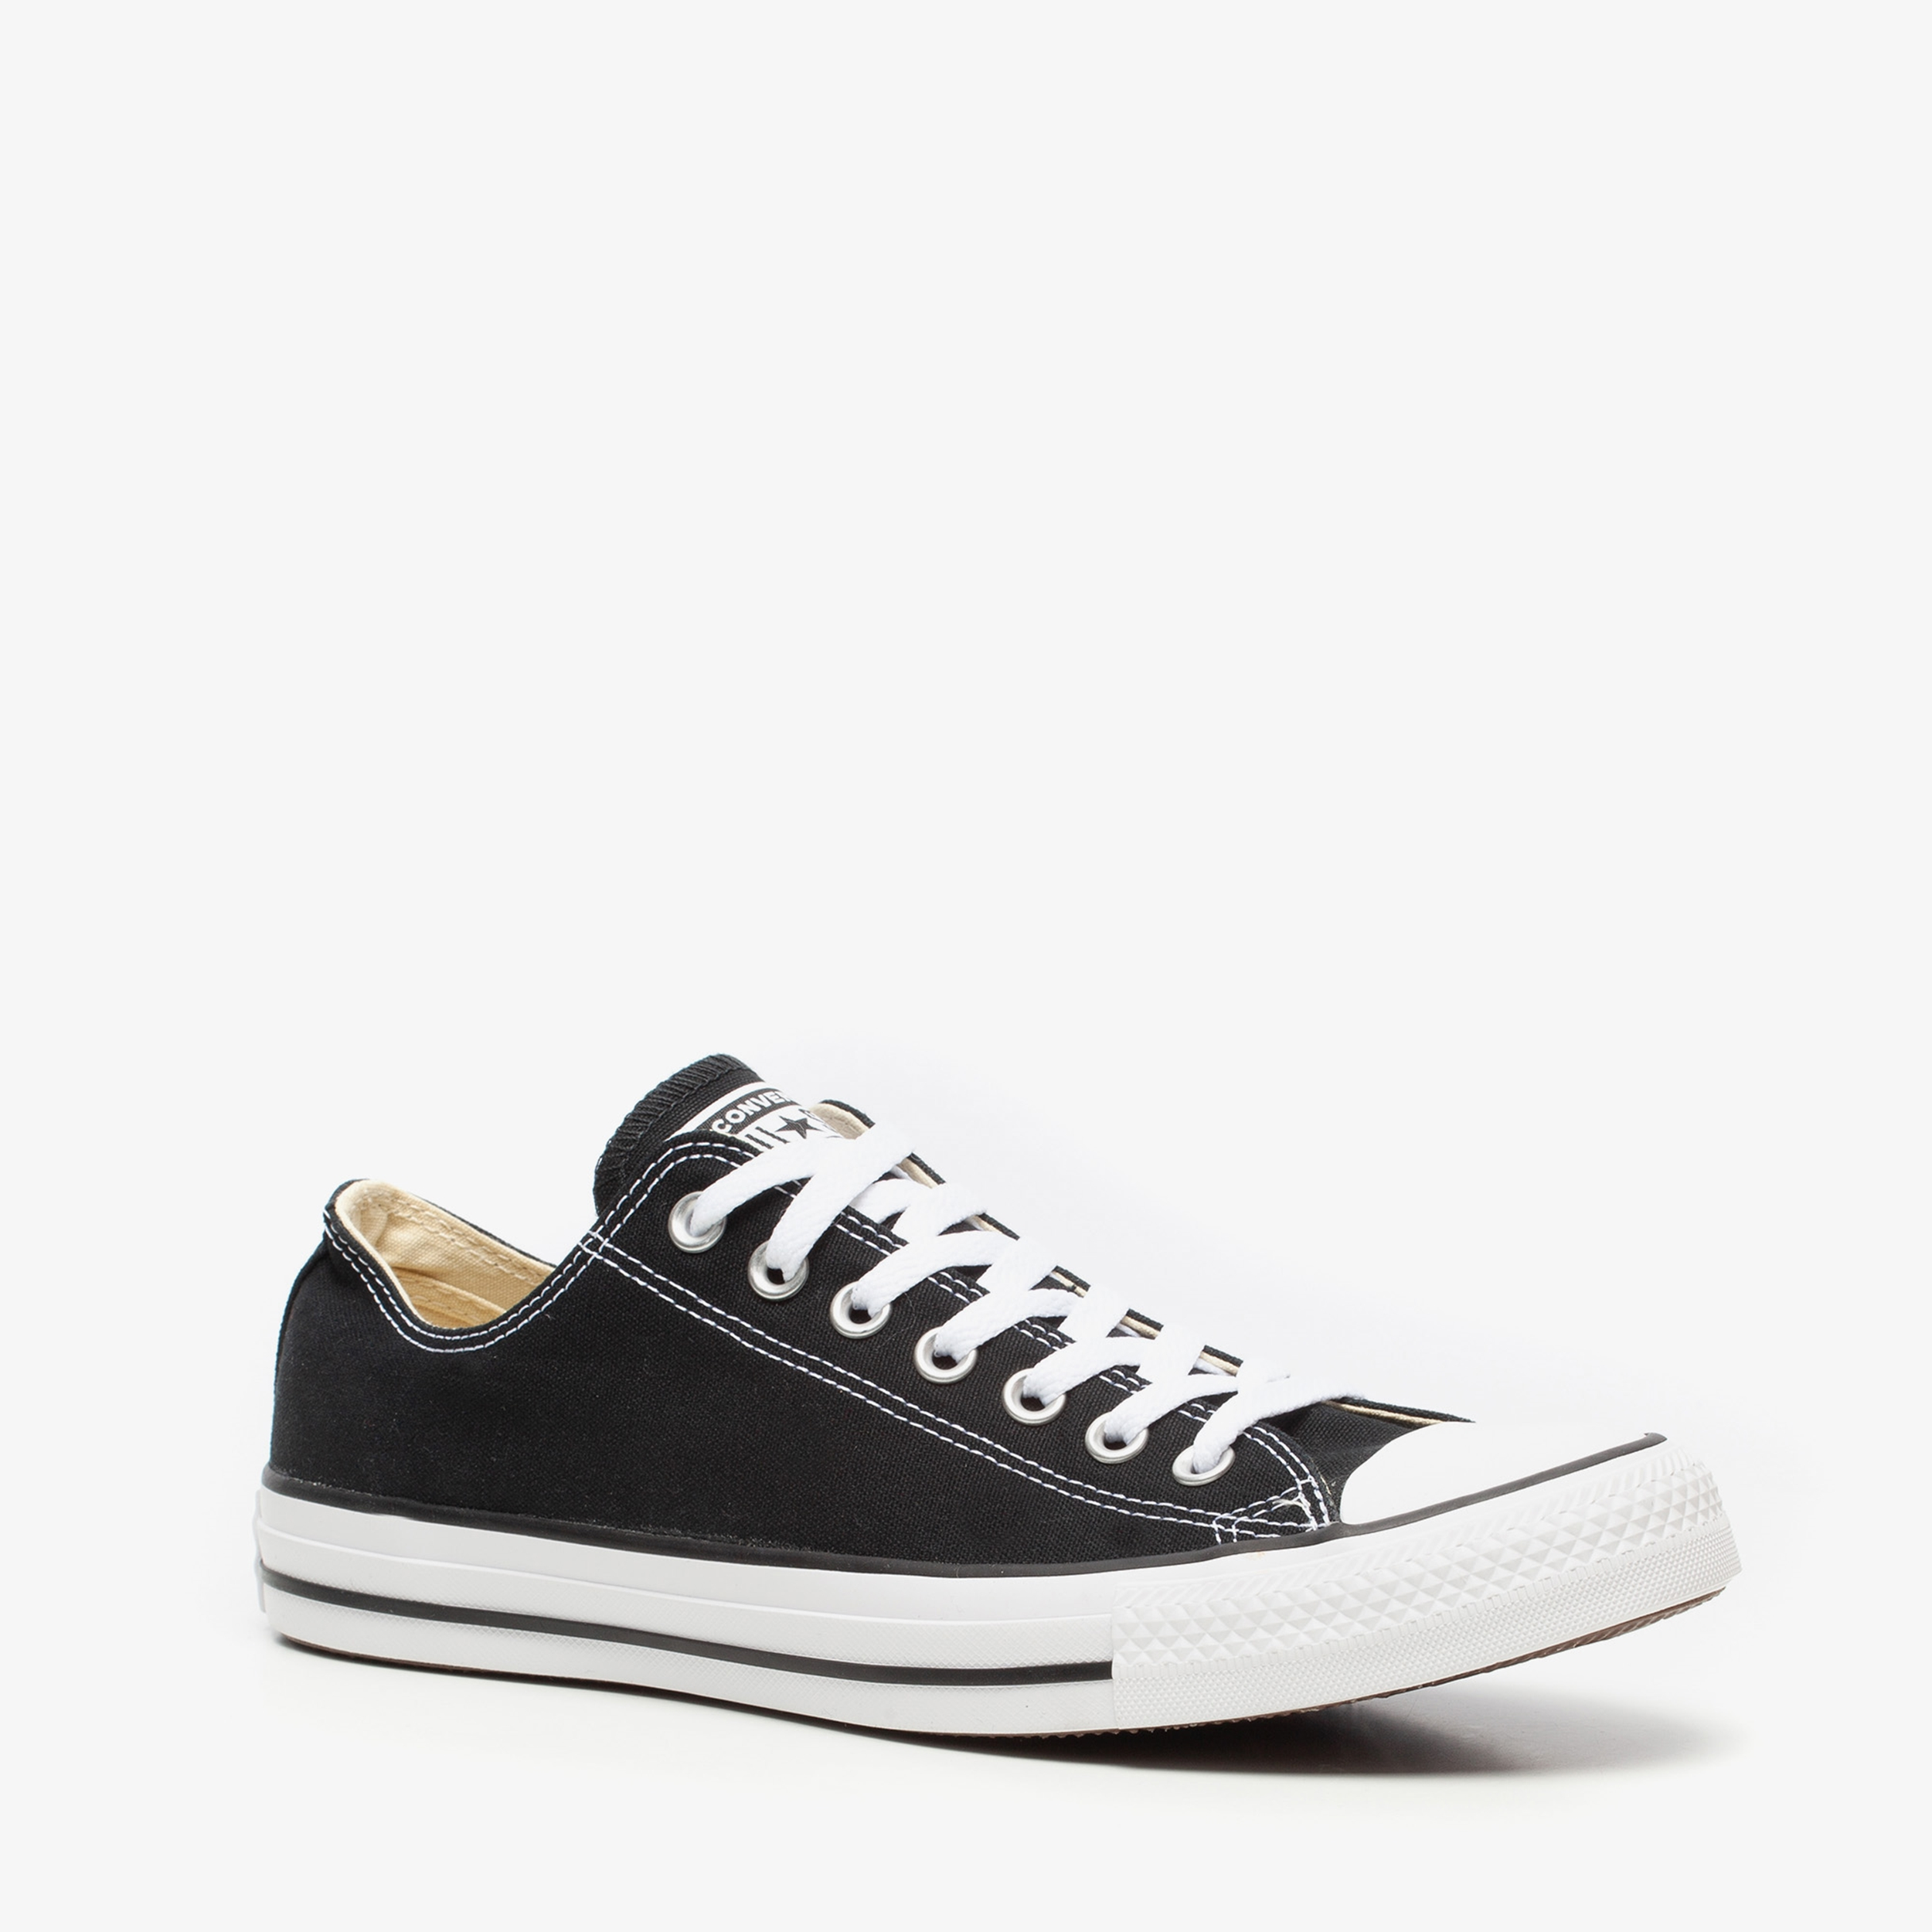 Converse Chuck Taylor All Star Classic sneakers | Scapino.nl